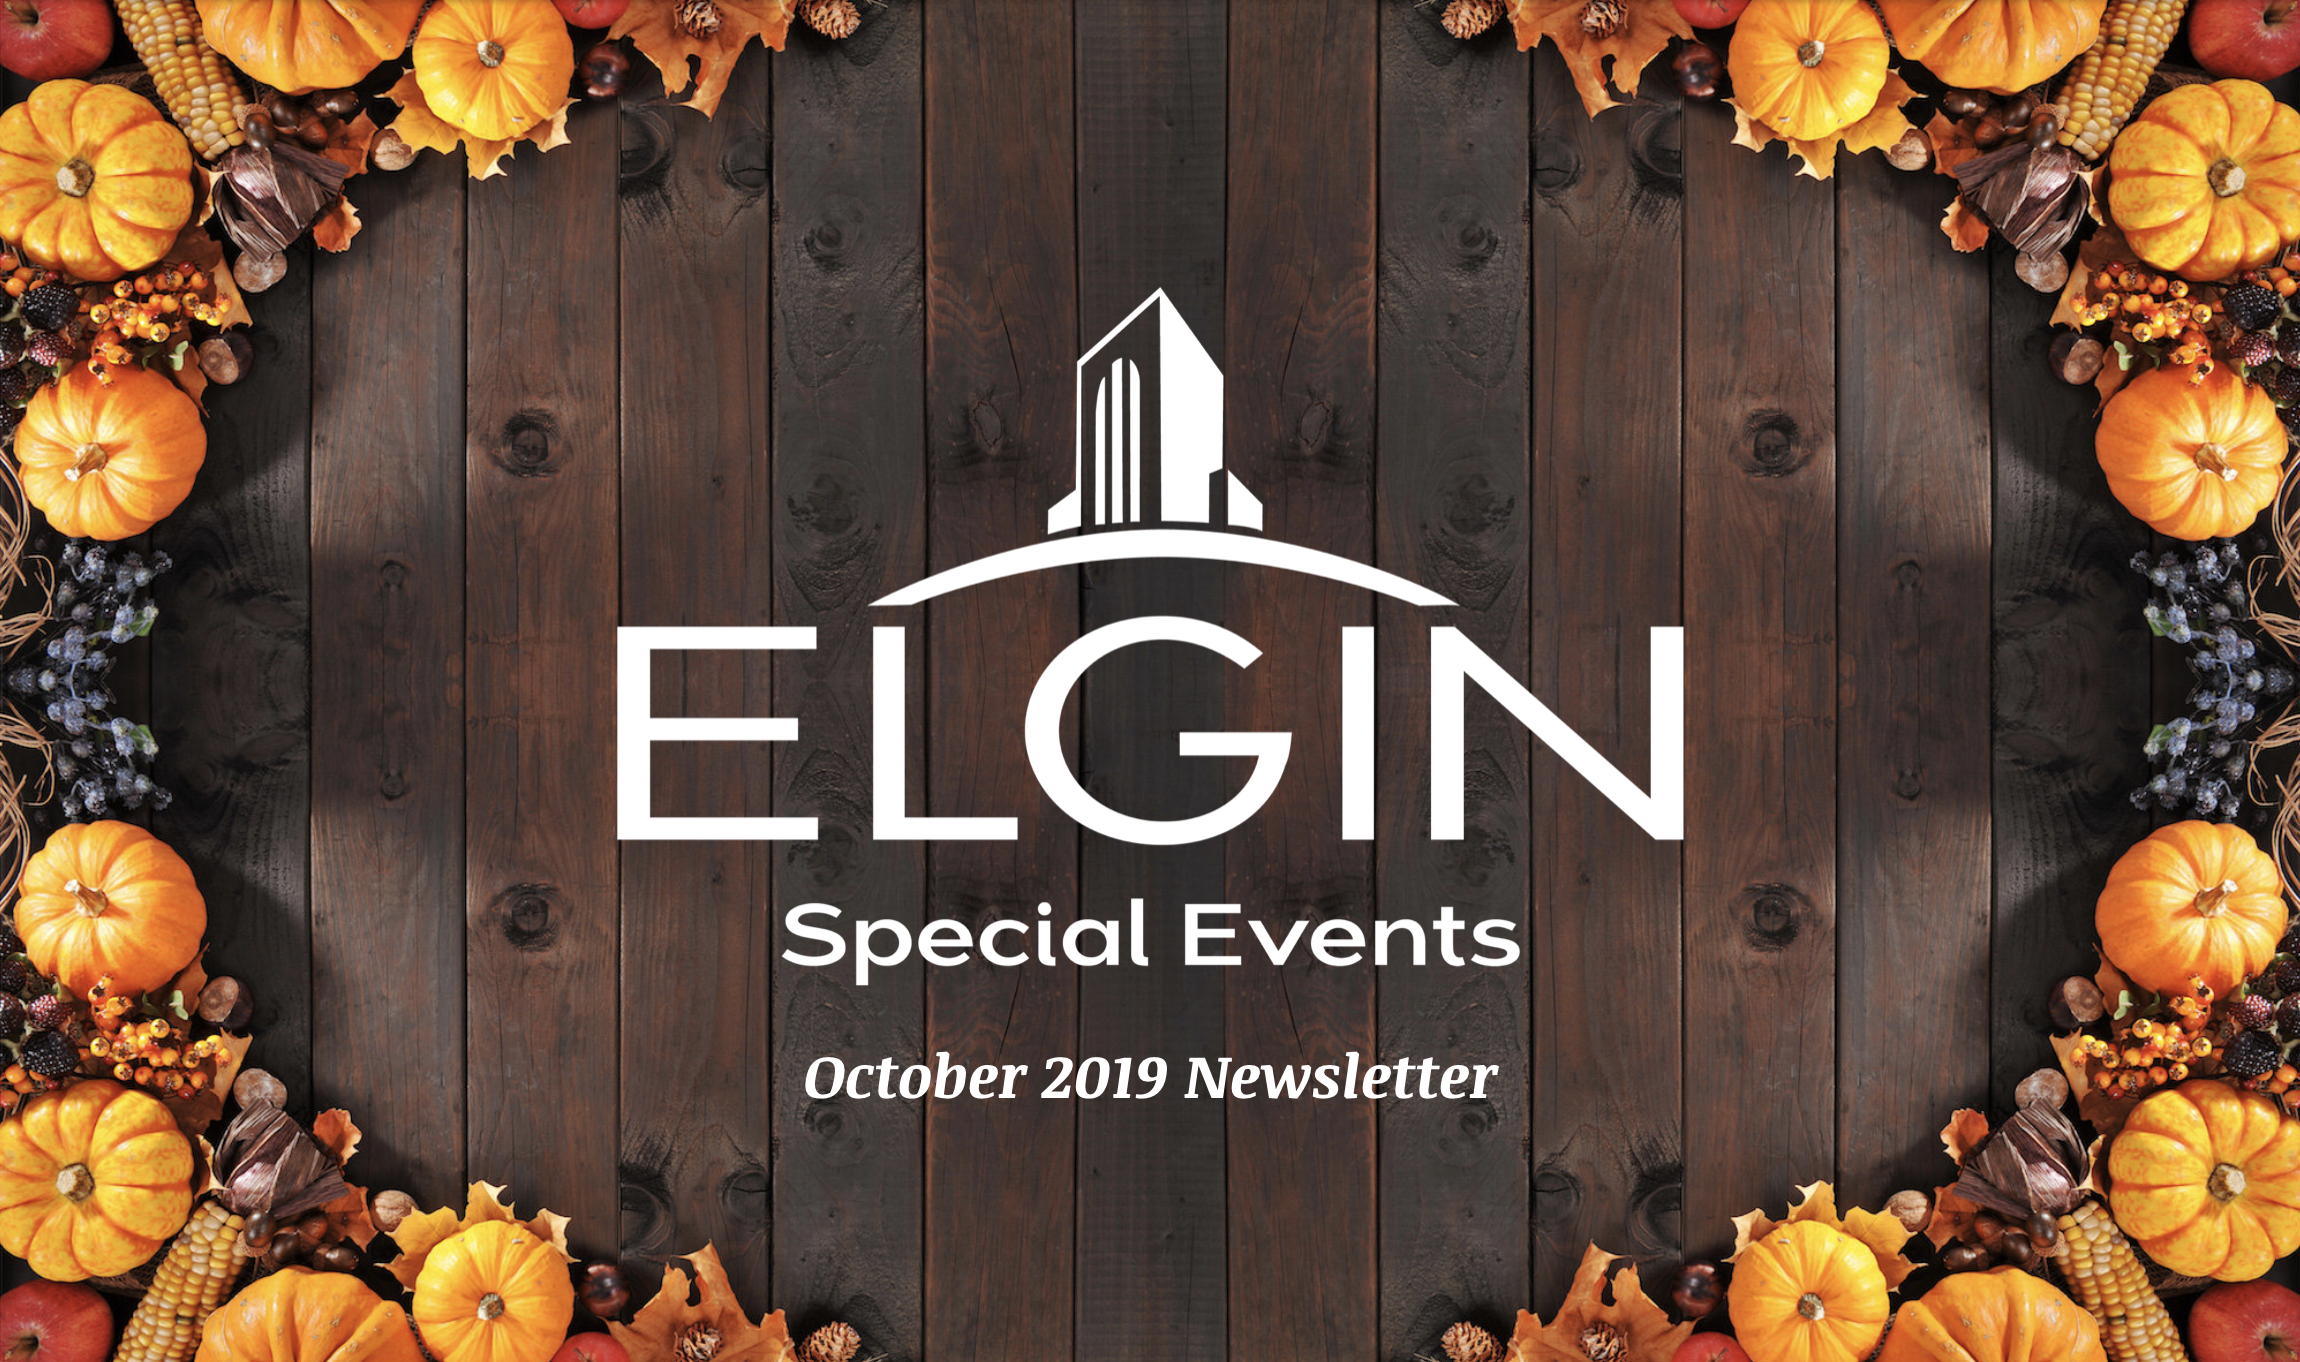 October 2019 Special Events Newsletter cover. brown with leaves and gourds